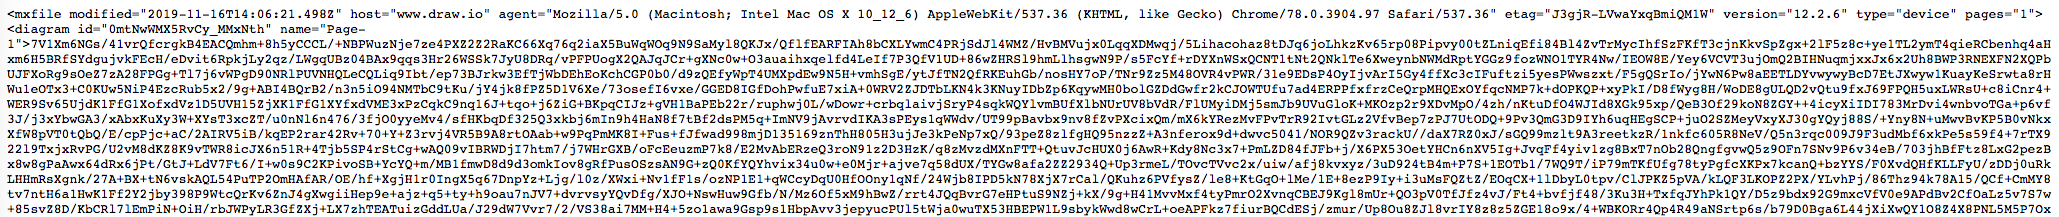 screen full of characters showing some xml unreadable code